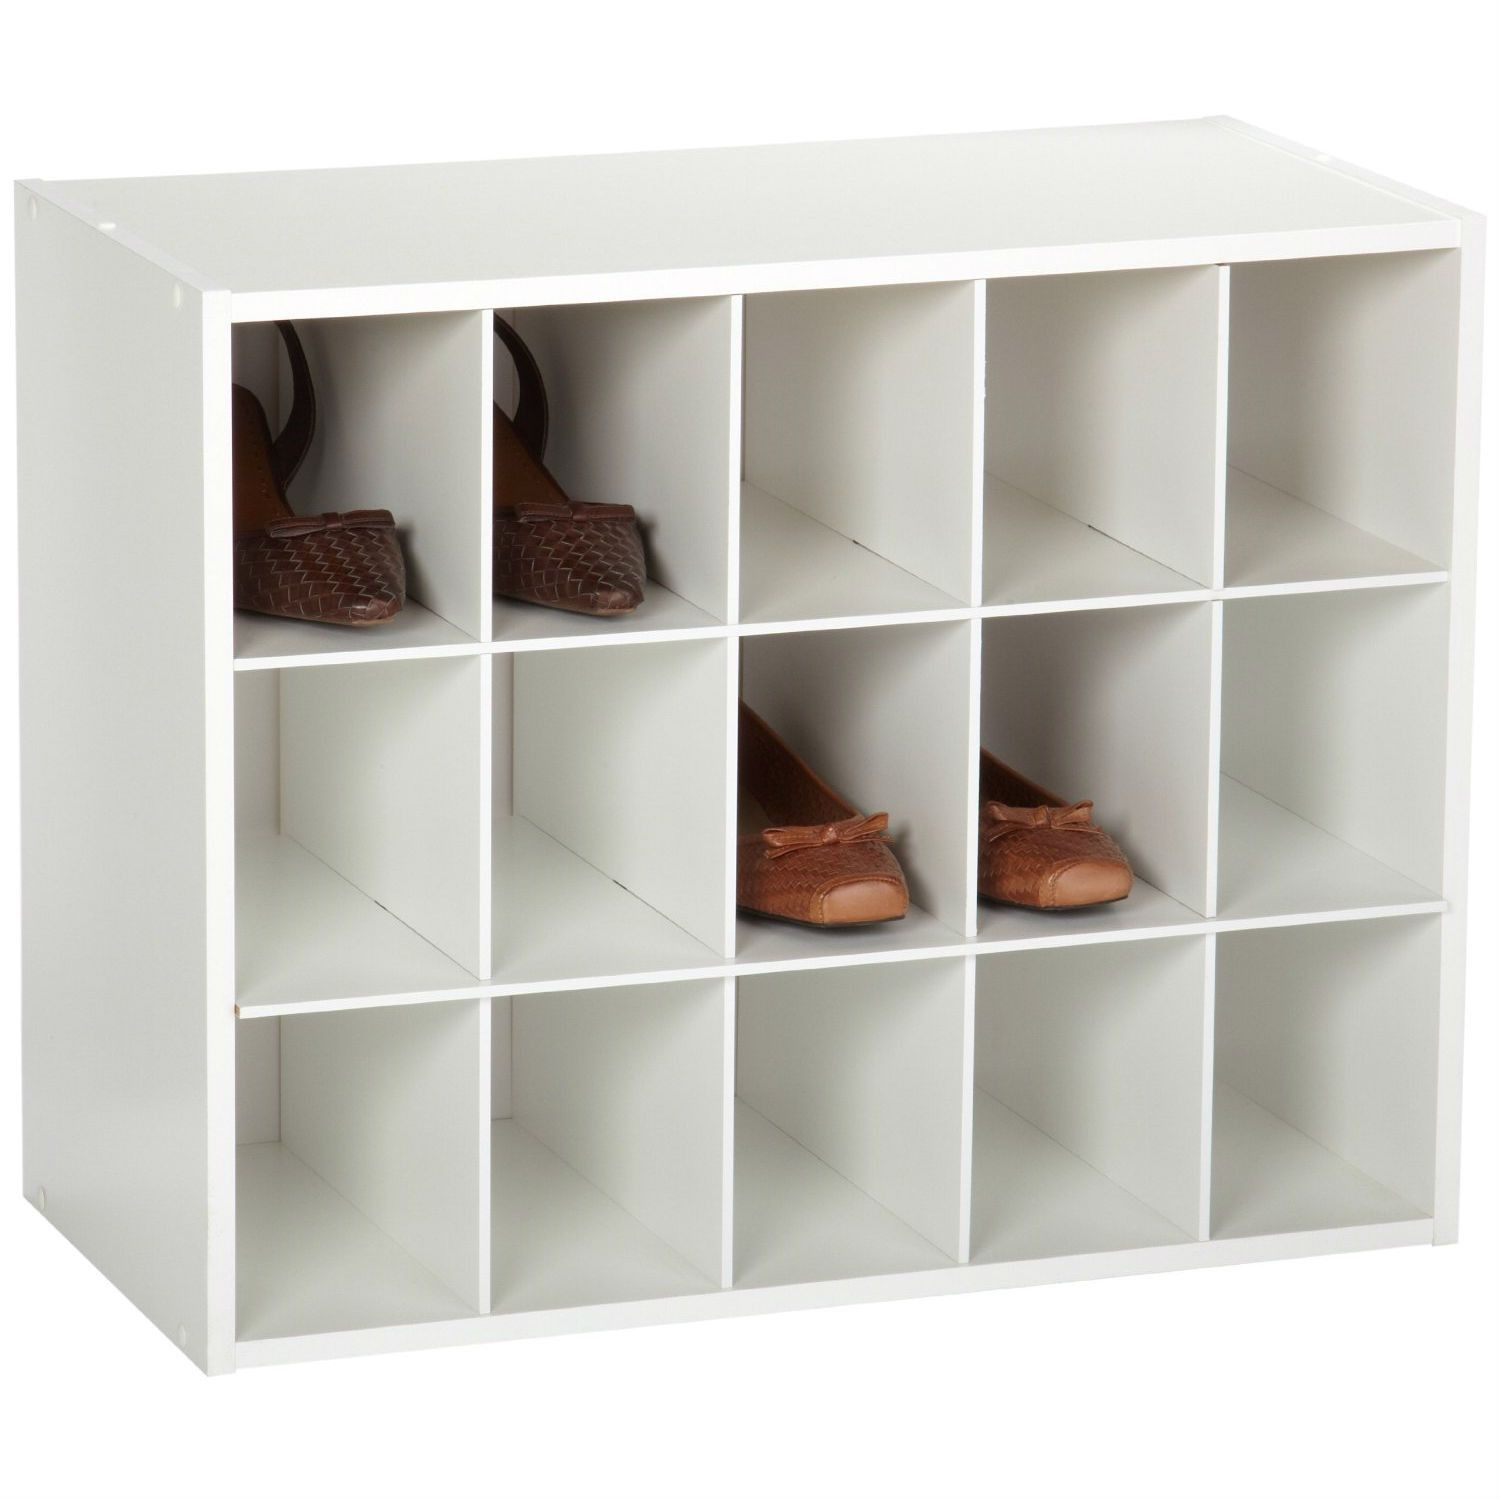 Shoe Racks And Organizers Glamorous 15Cubby Stackable Shoe Rack Organizer Shelves In White Wood Finish Design Inspiration